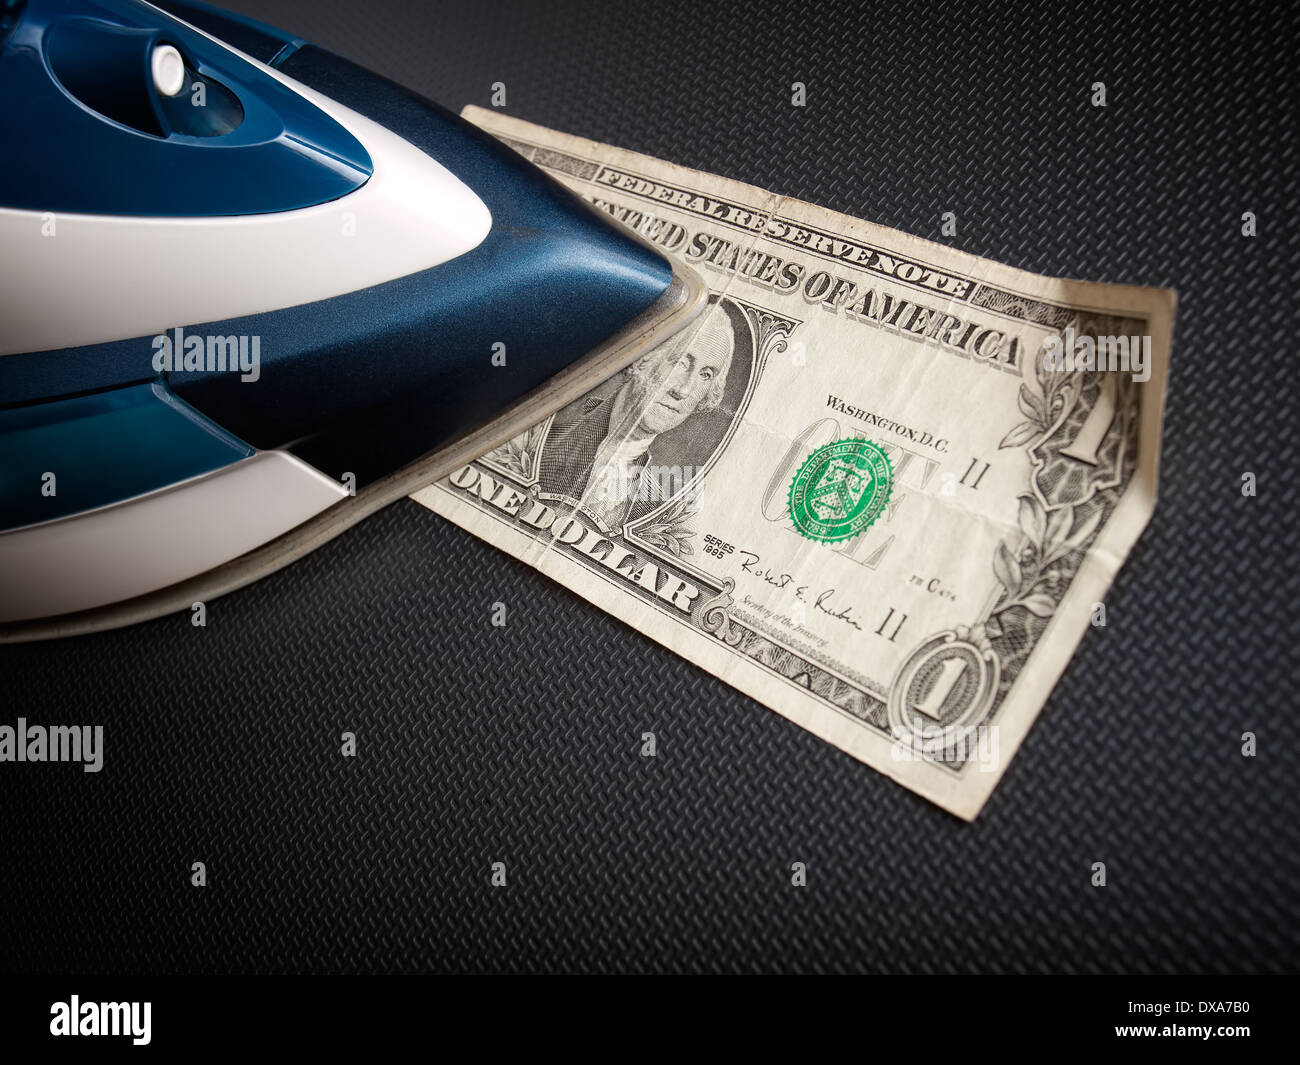 Ironing of money as a concept of what happens after the Money Laundering - Stock Image